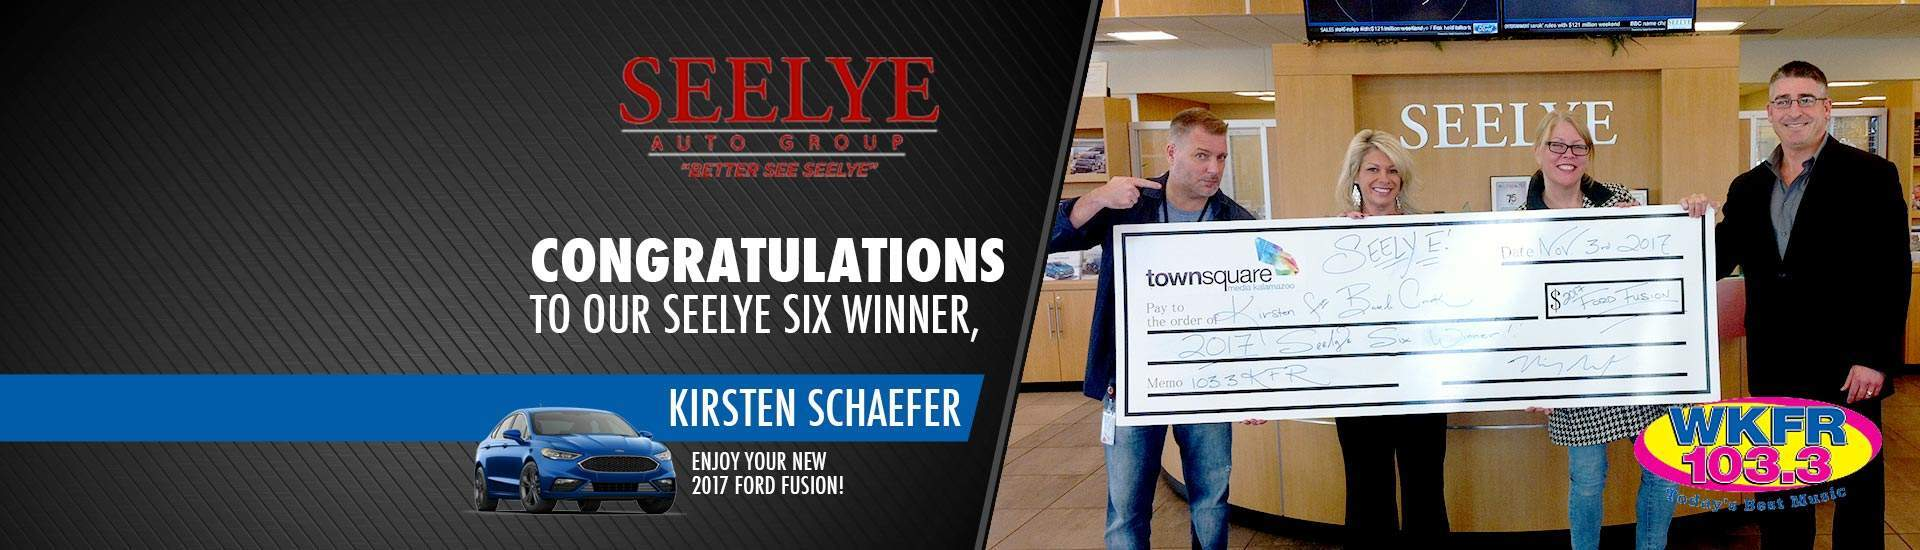 Seelye Six Winner